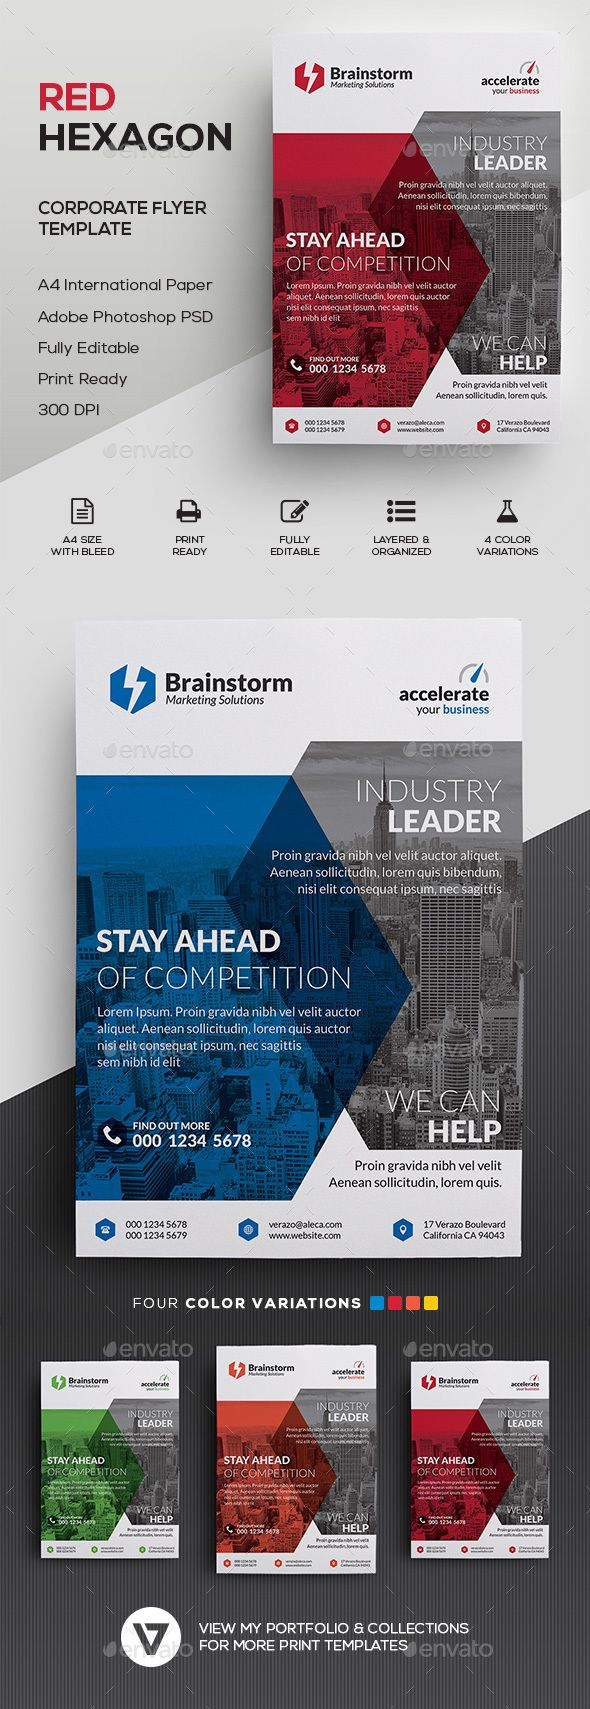 Stylish corporate business flyer template psd flyer templates stylish corporate business flyer template psd accmission Gallery